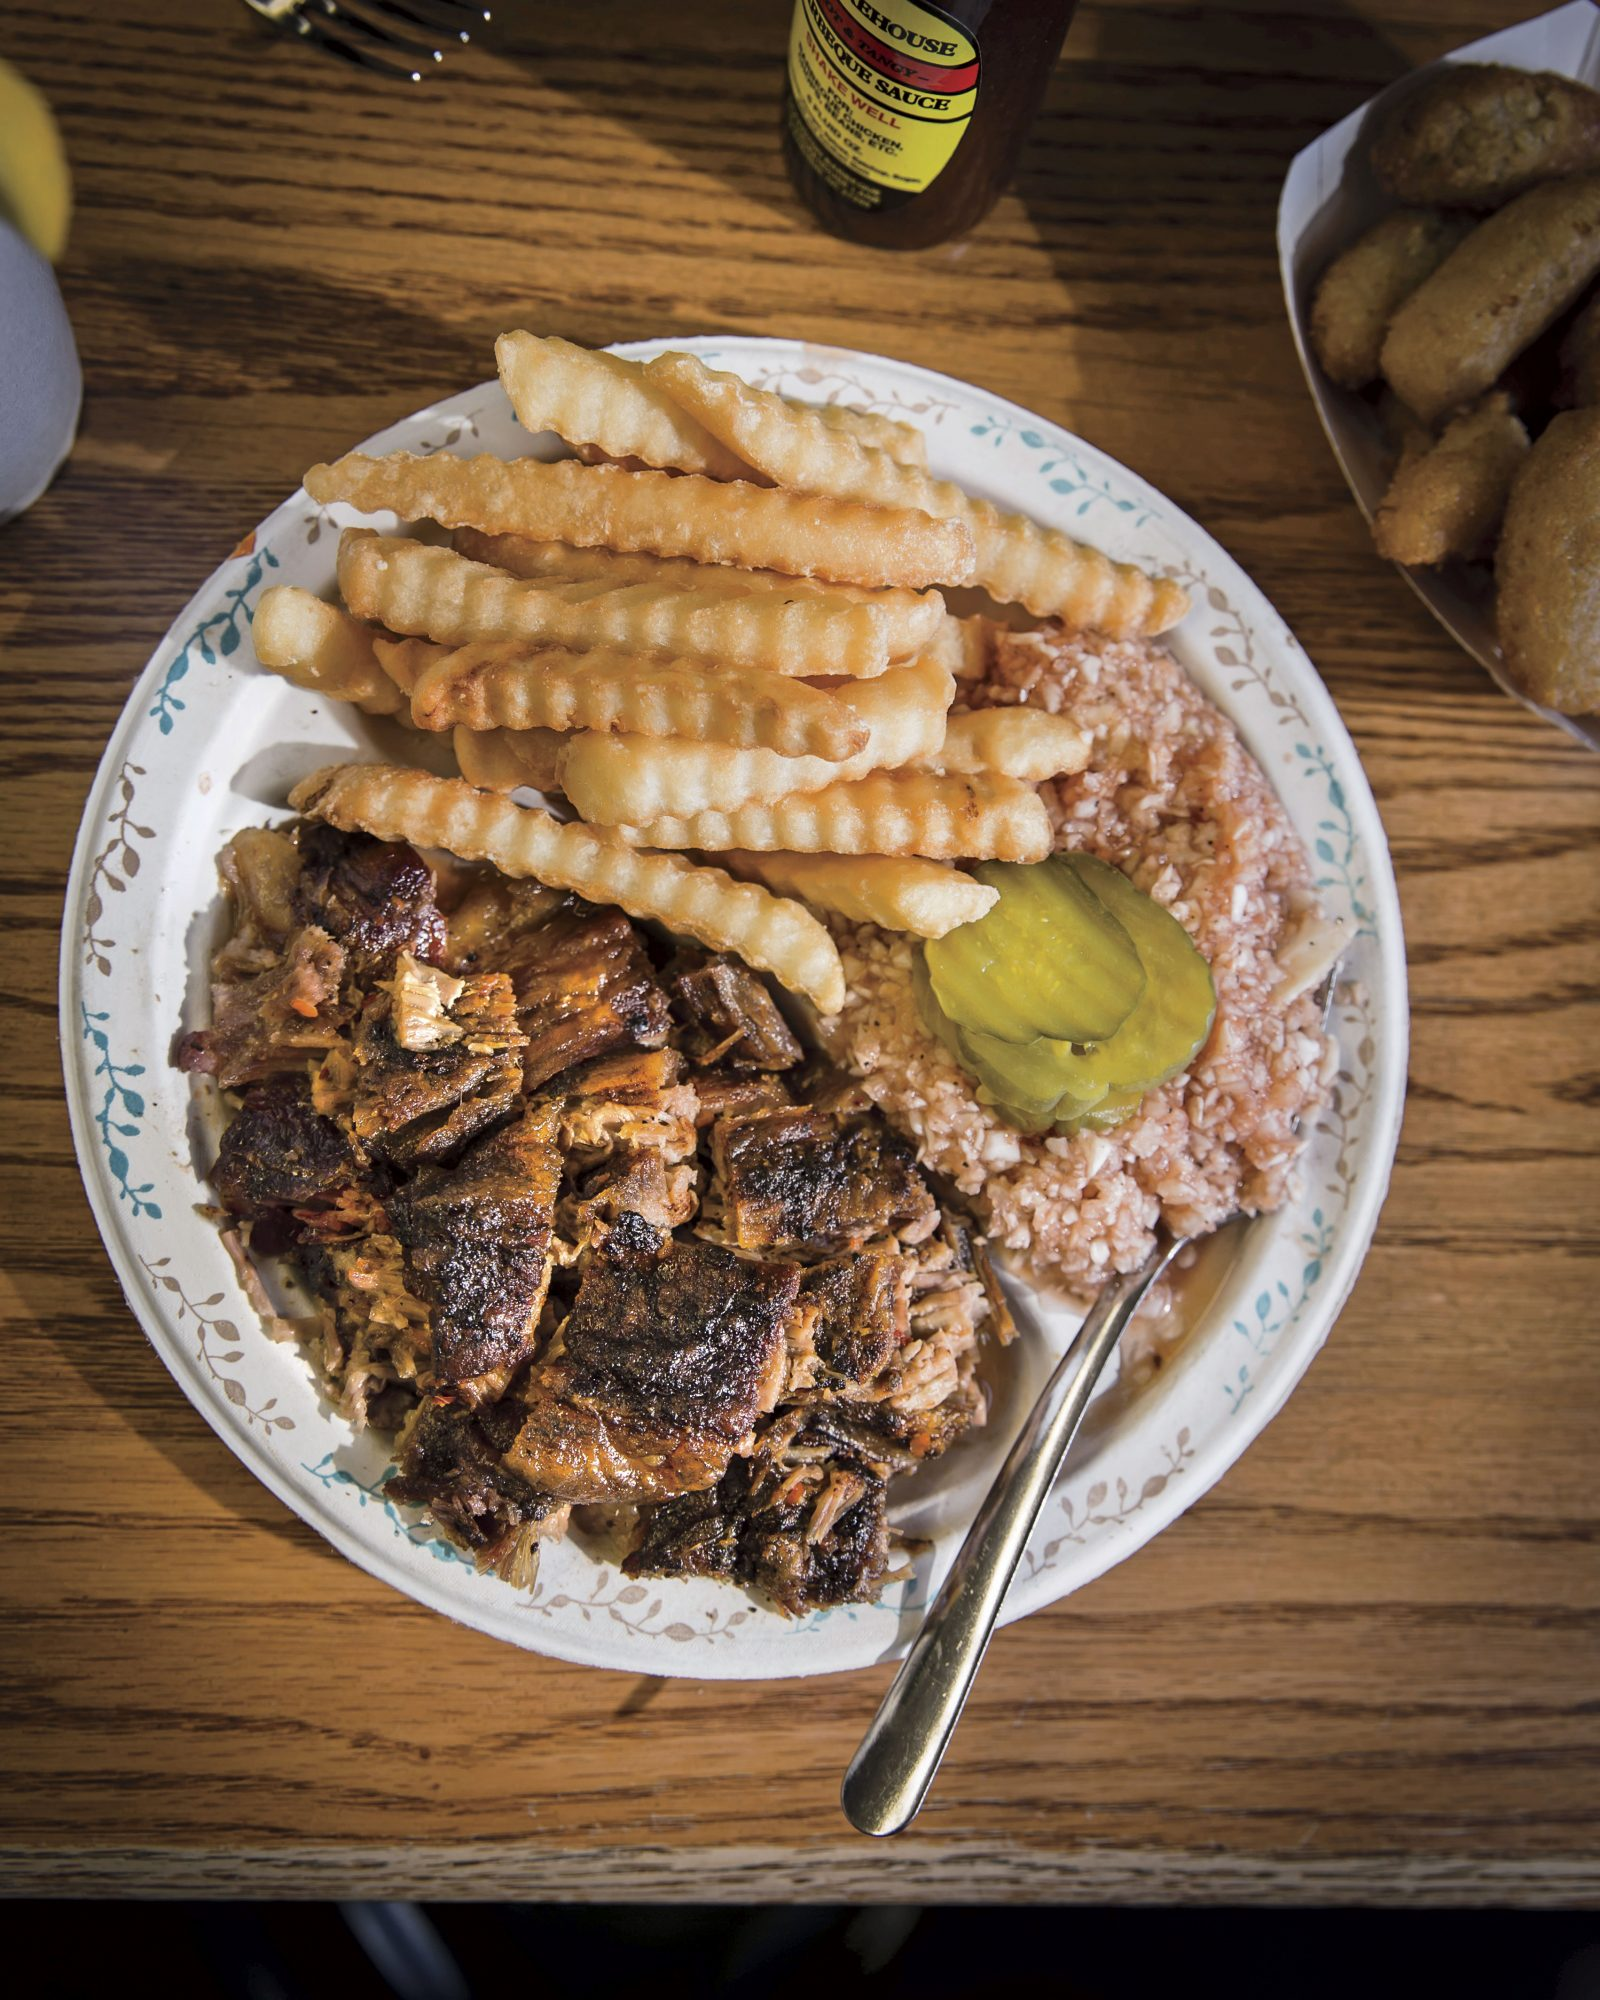 Lexington Barbecue in Lexington, NC